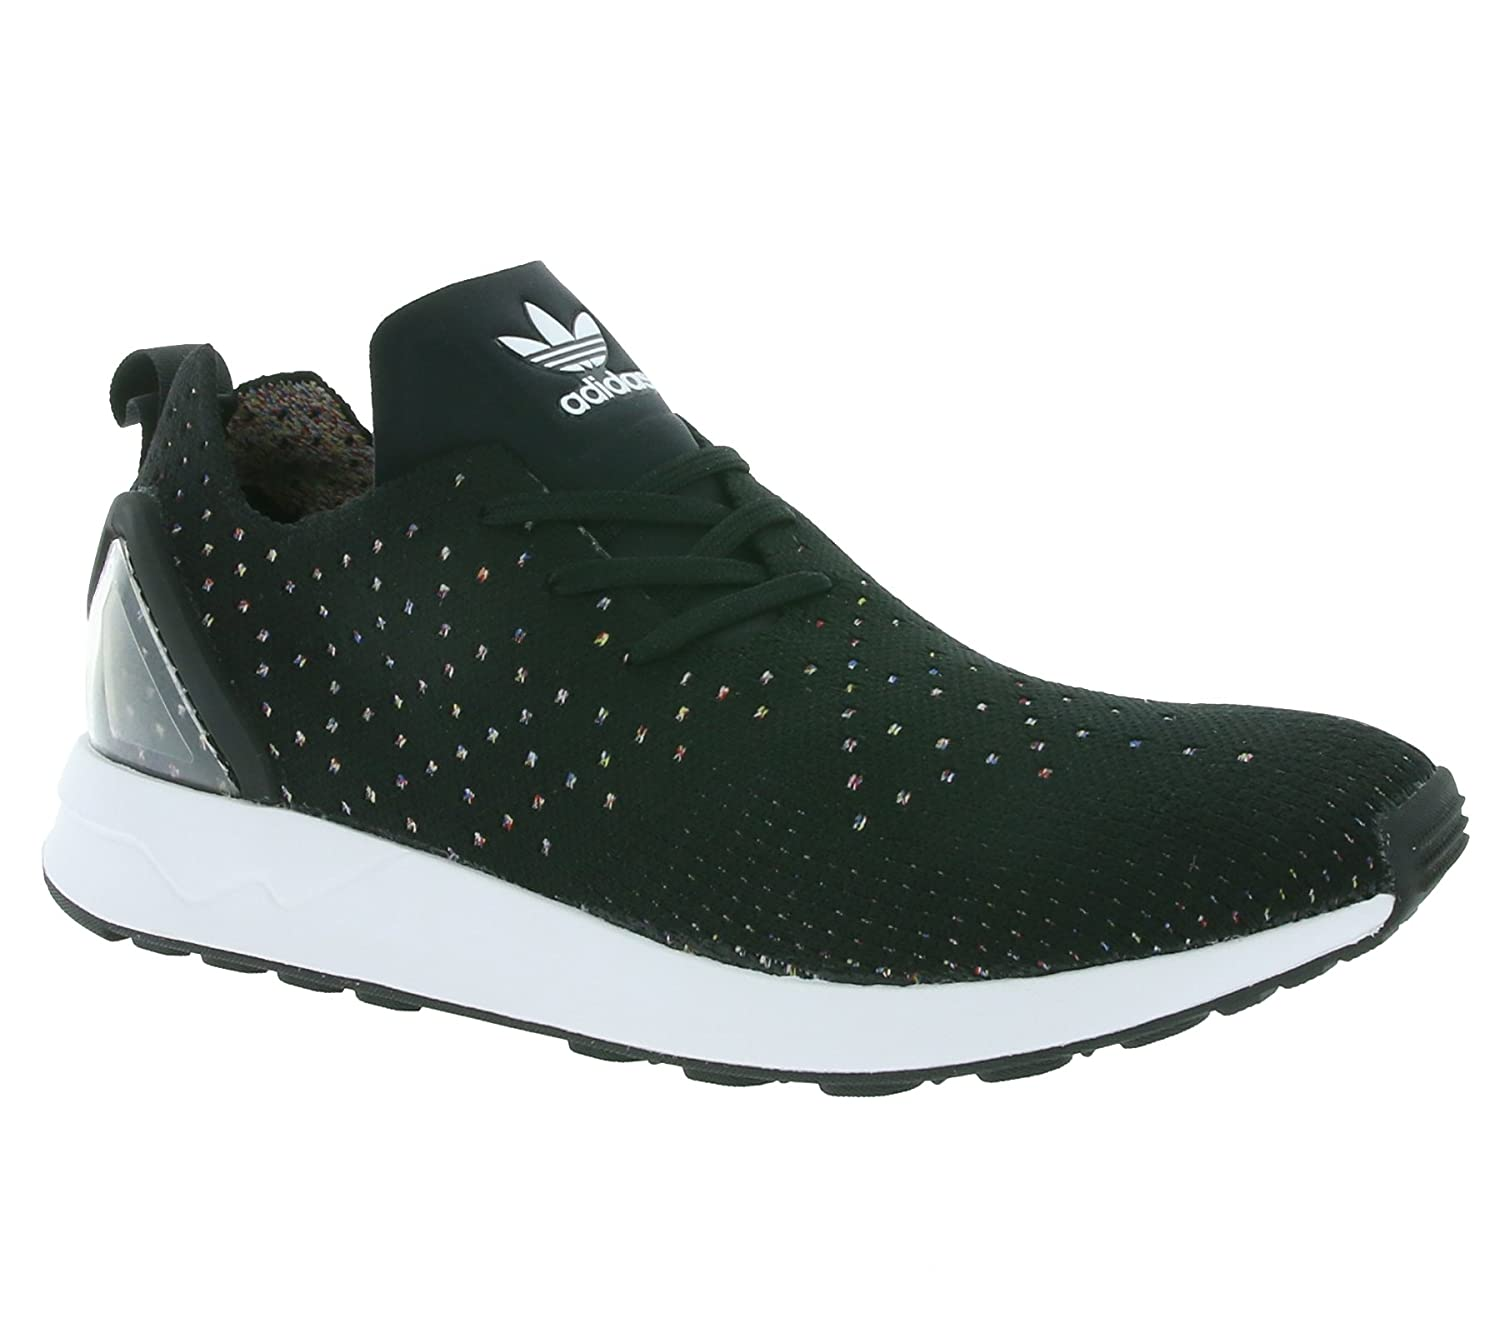 fe1c26094 adidas Zx Flux Adv Asym  Amazon.co.uk  Shoes   Bags